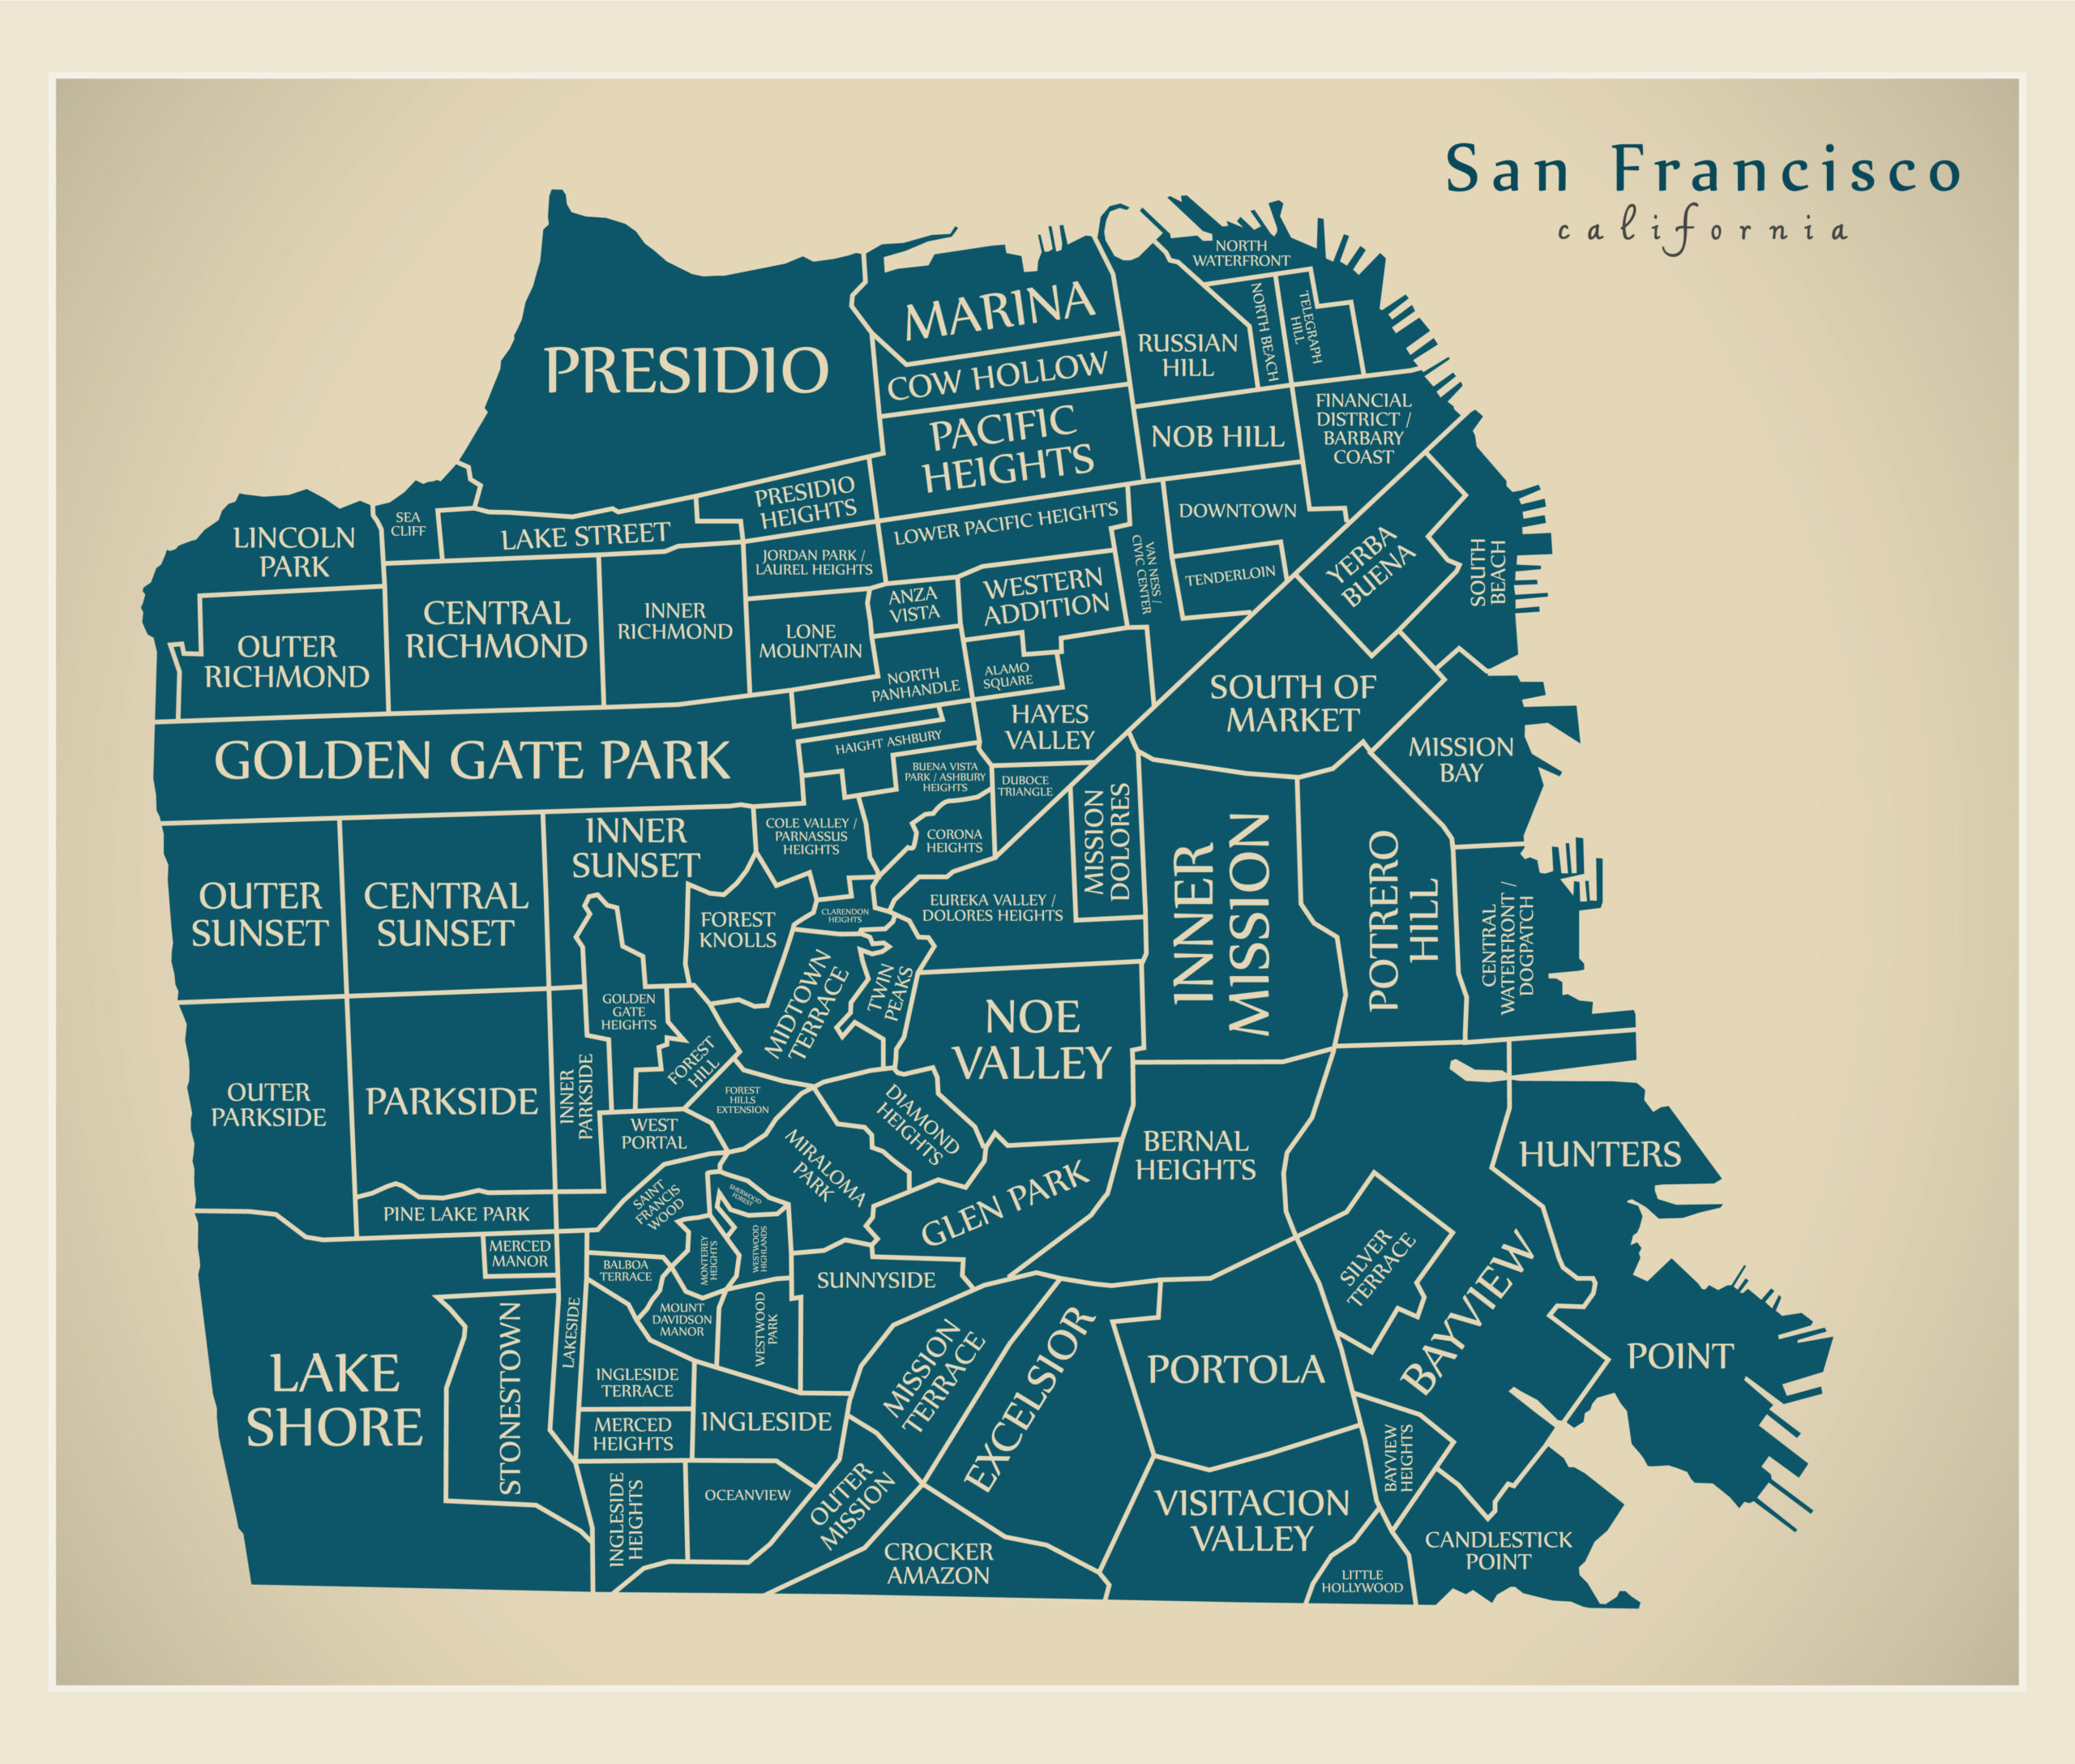 Photo of a map of San Francisco that depicts each neighborhood.